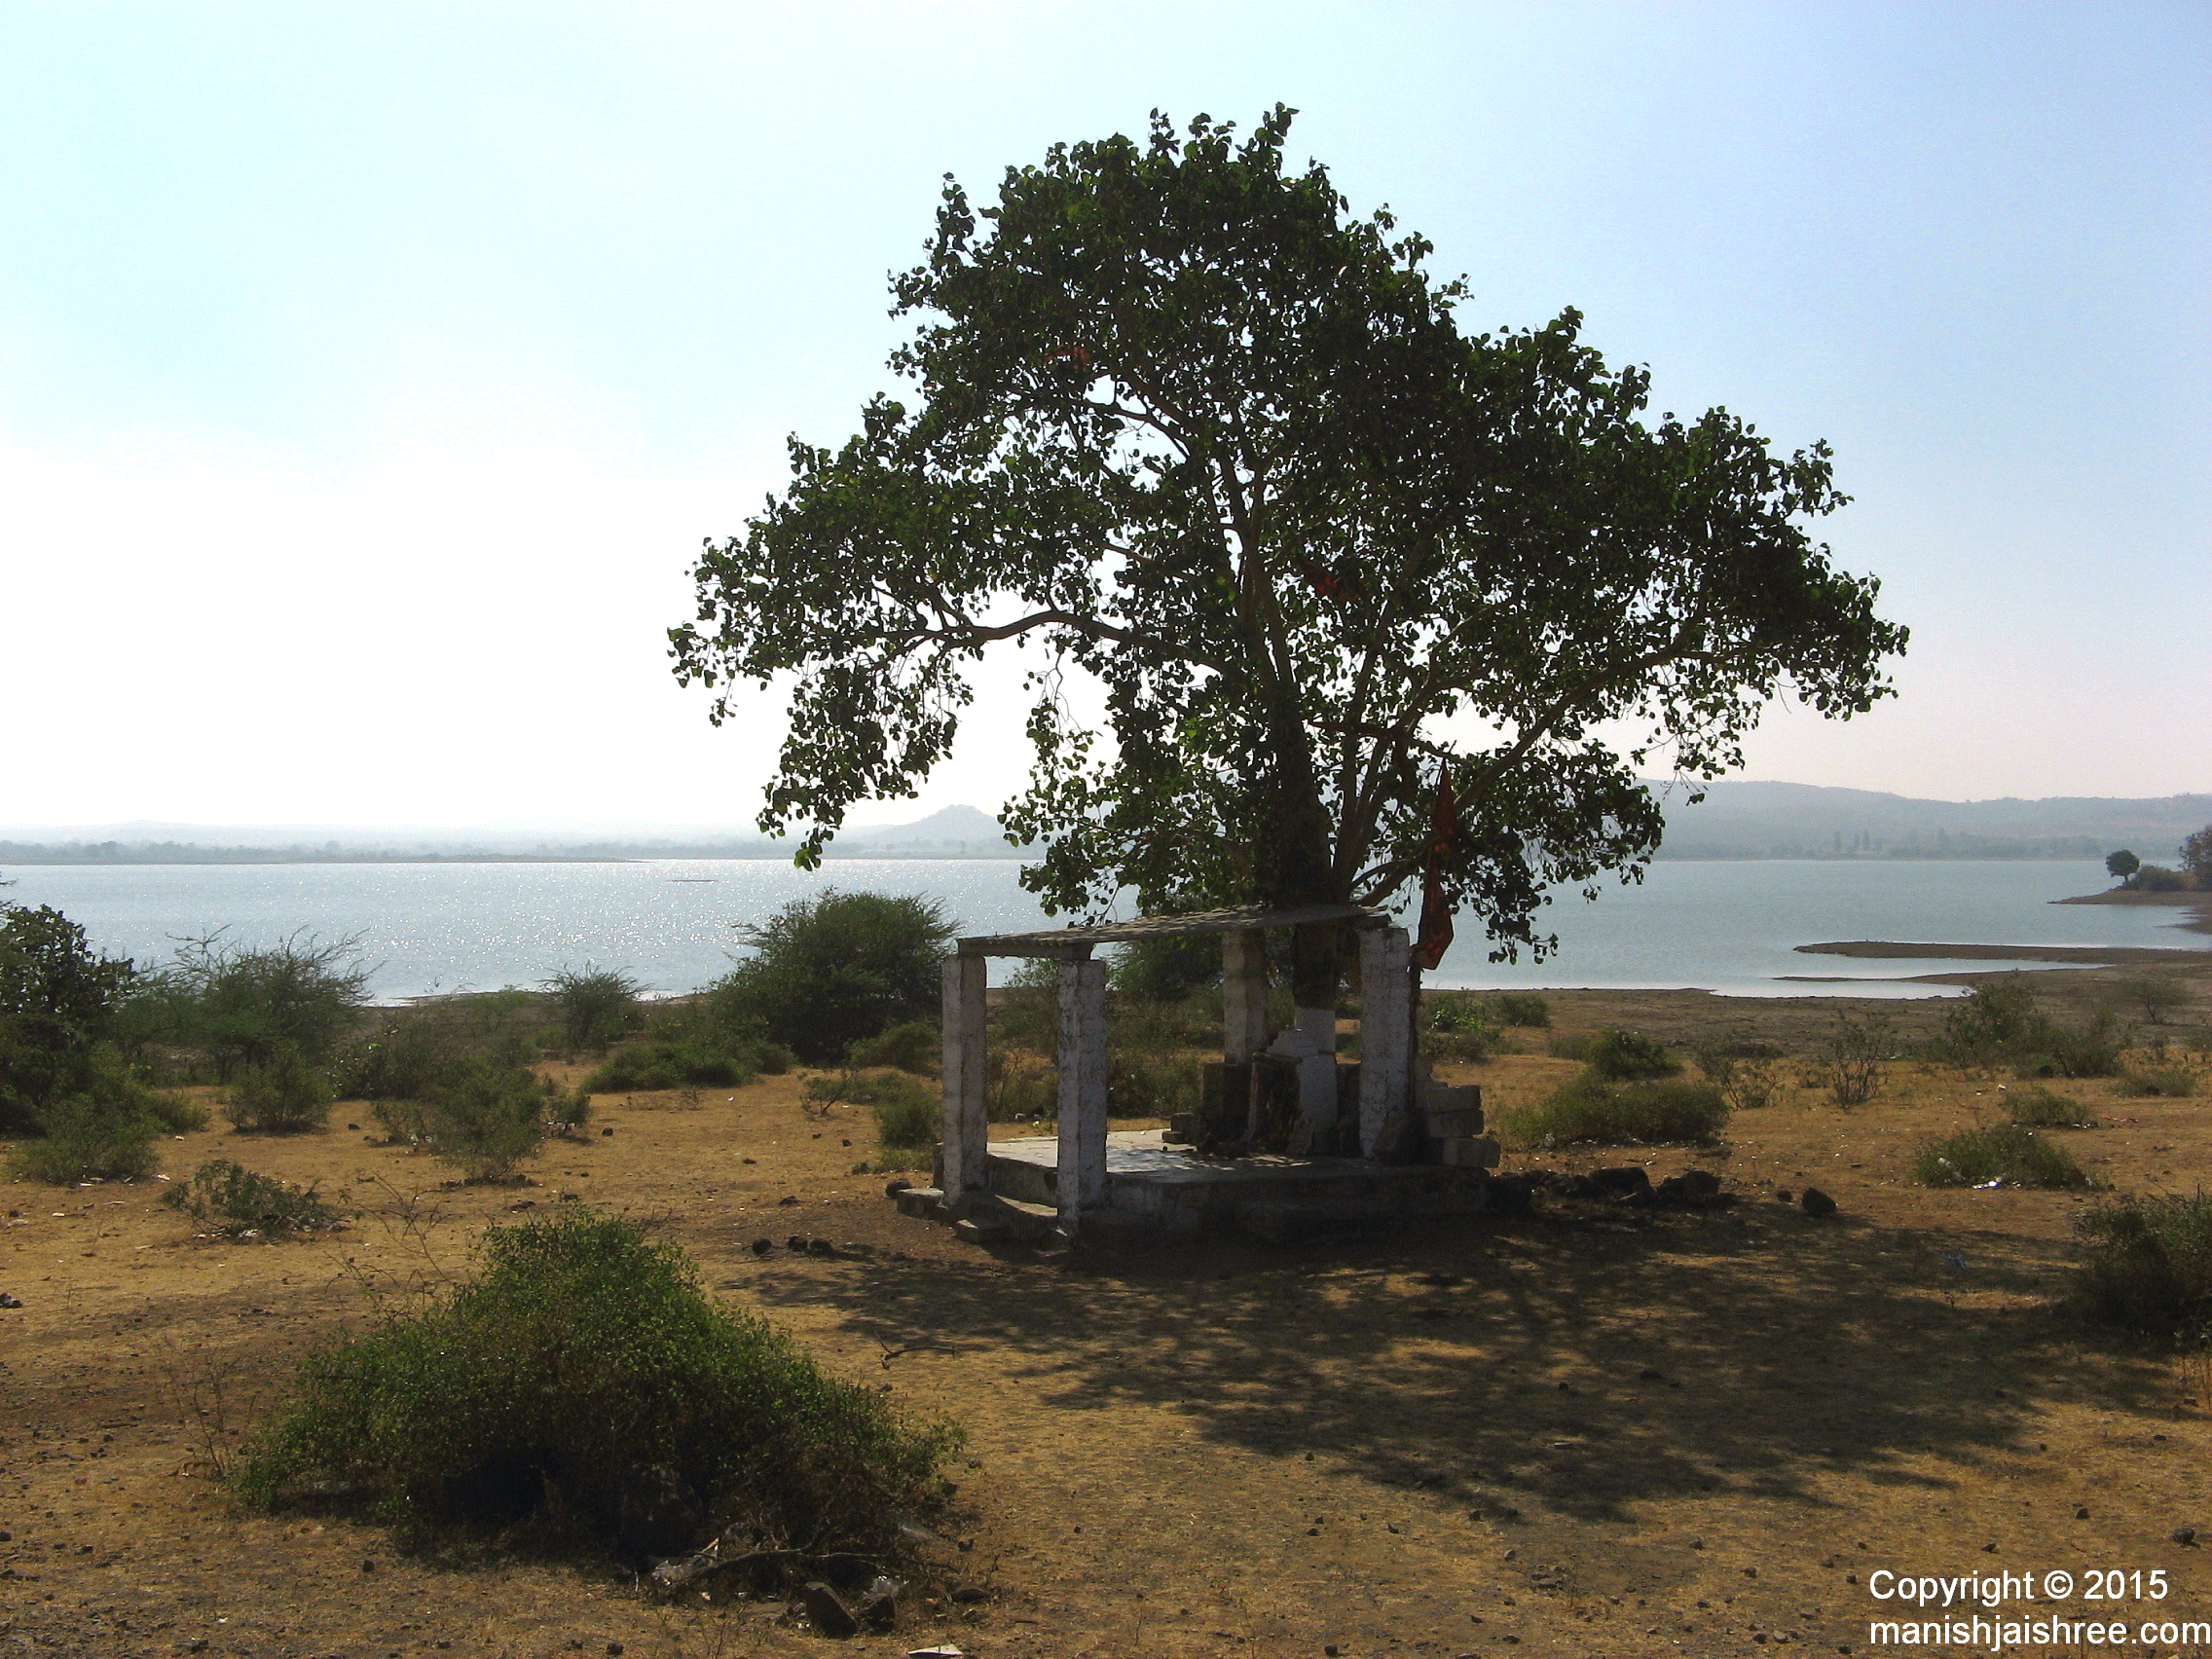 A peaceful place enroute, from Sasan-Gir to Junagarh